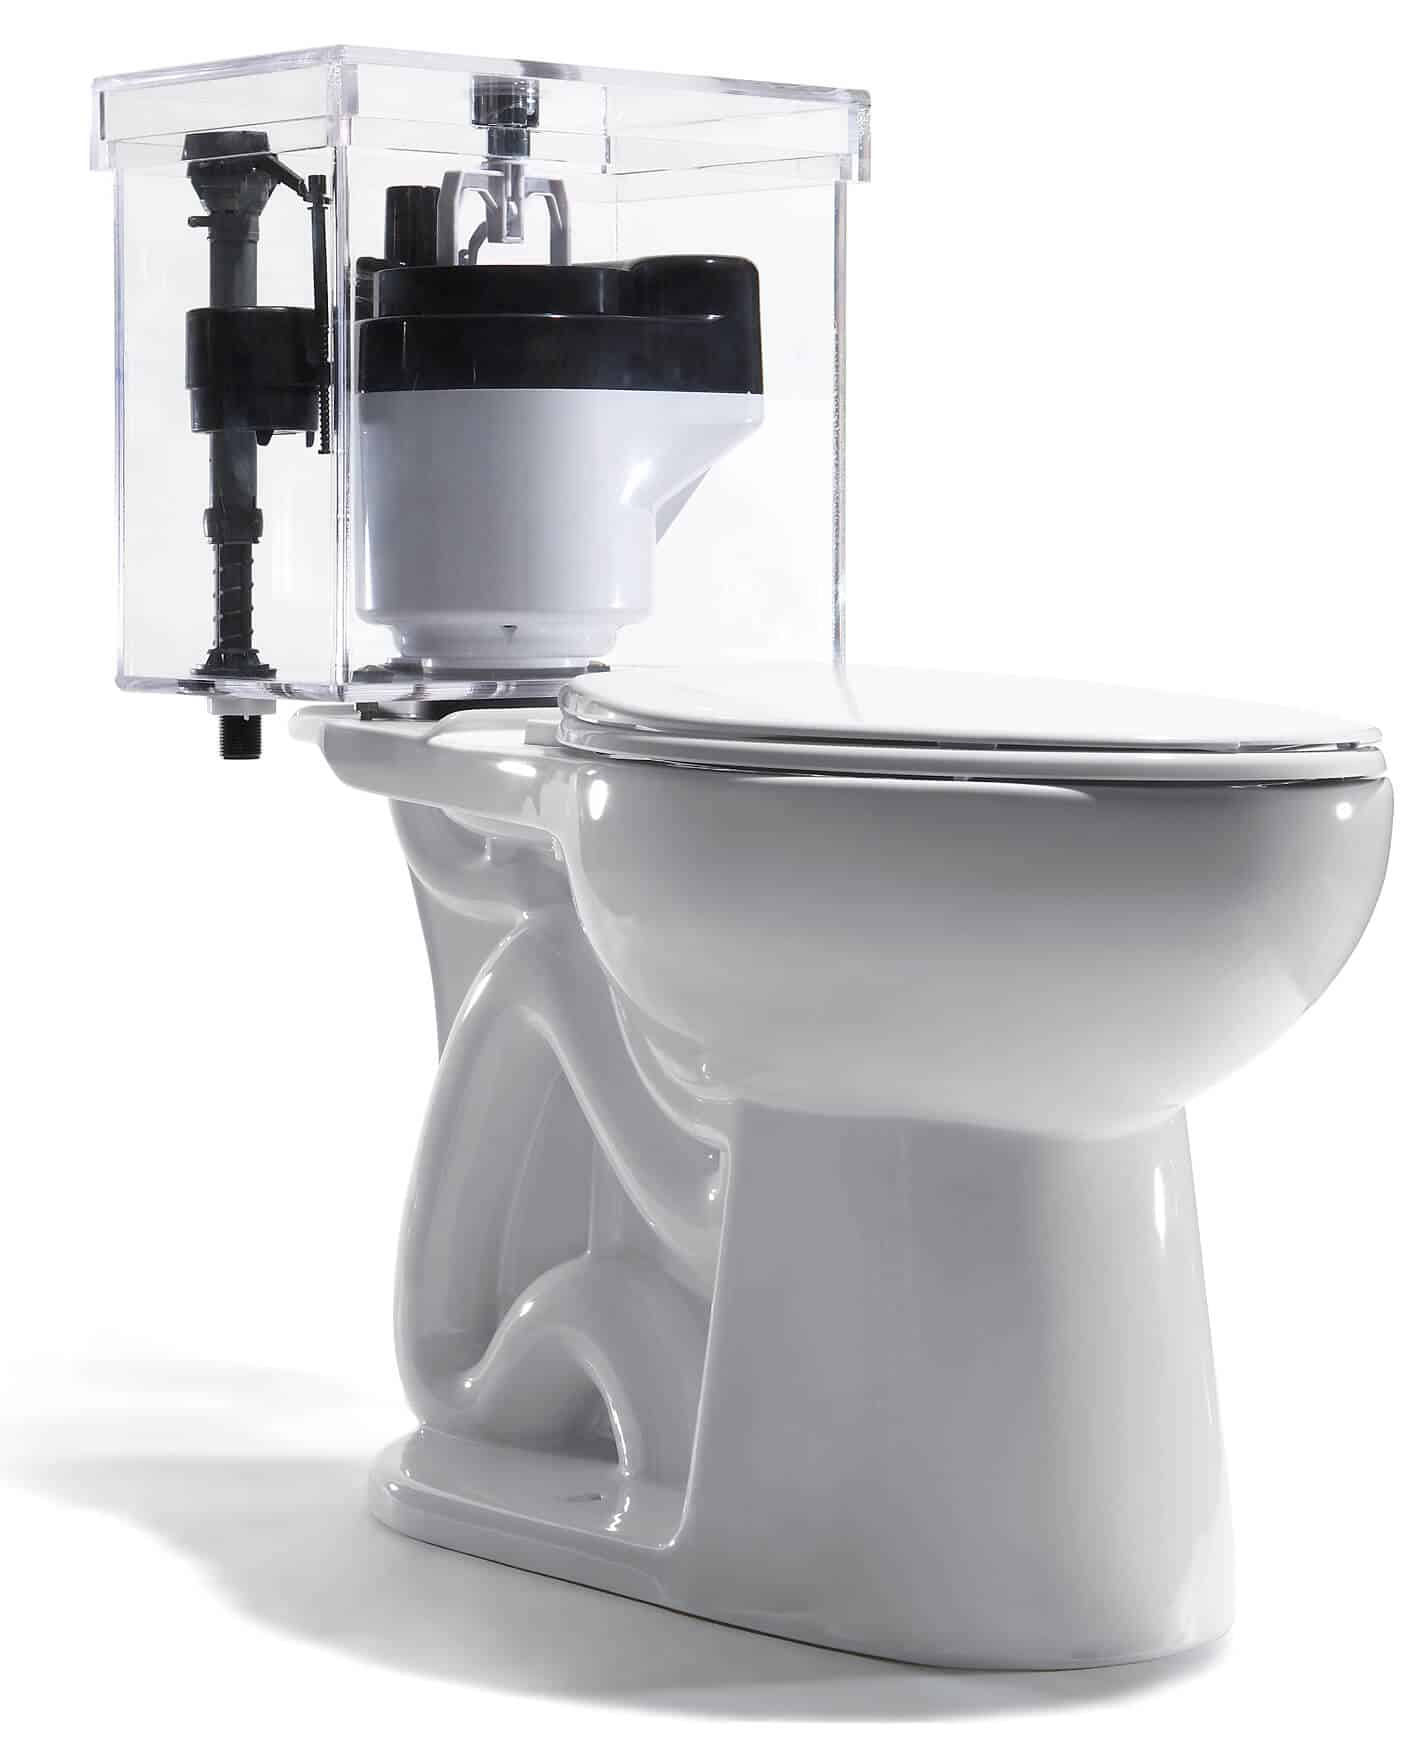 The Three Fundamental Flaws Of The Modern Toilet - MetaEfficient